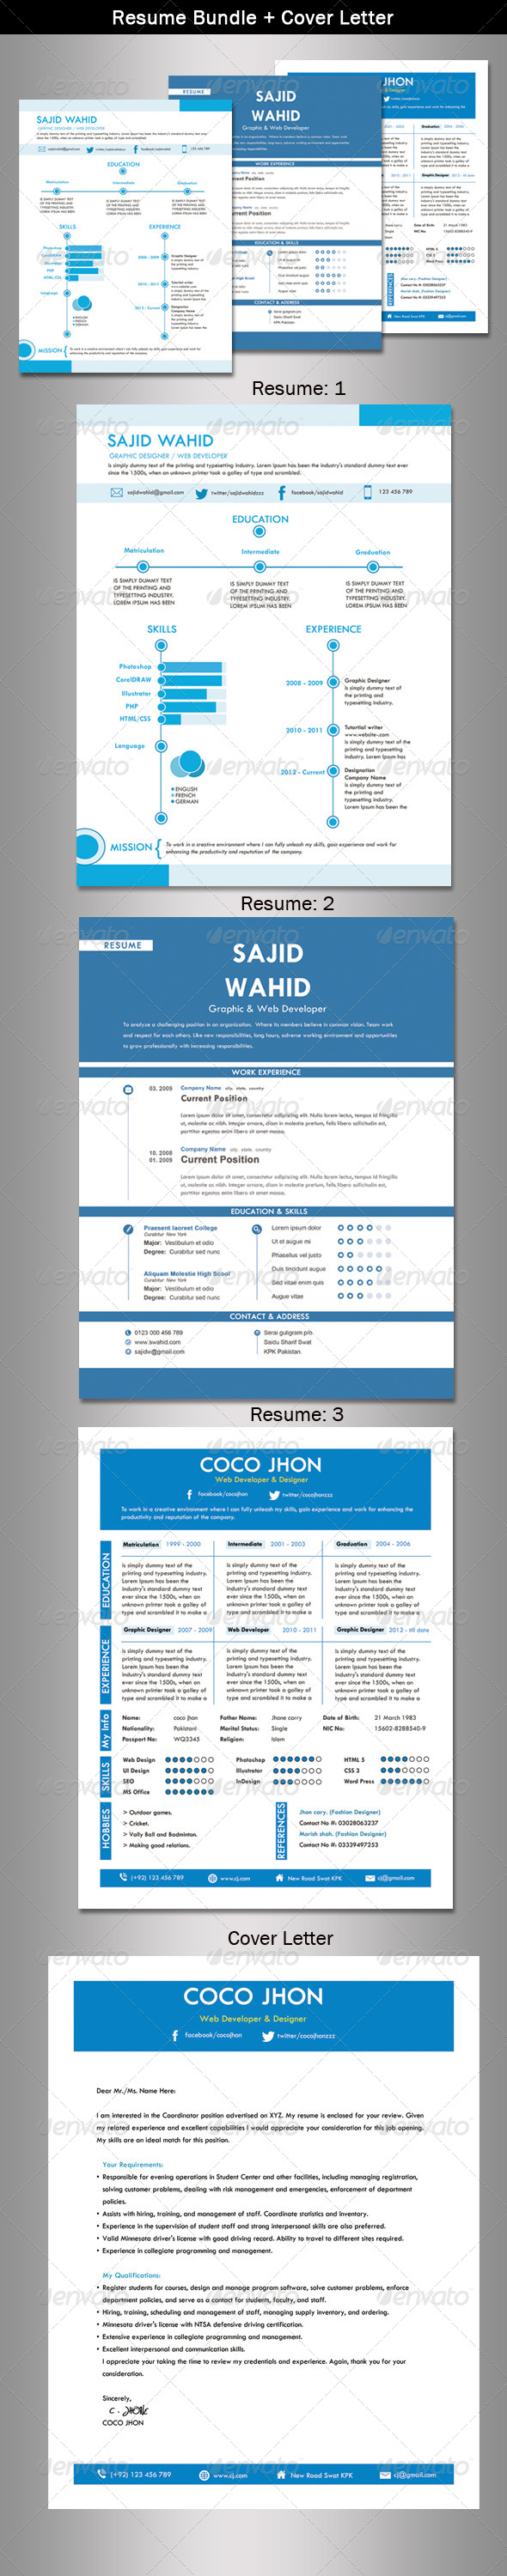 GraphicRiver Resume Bundle & Cover Letter 5406828